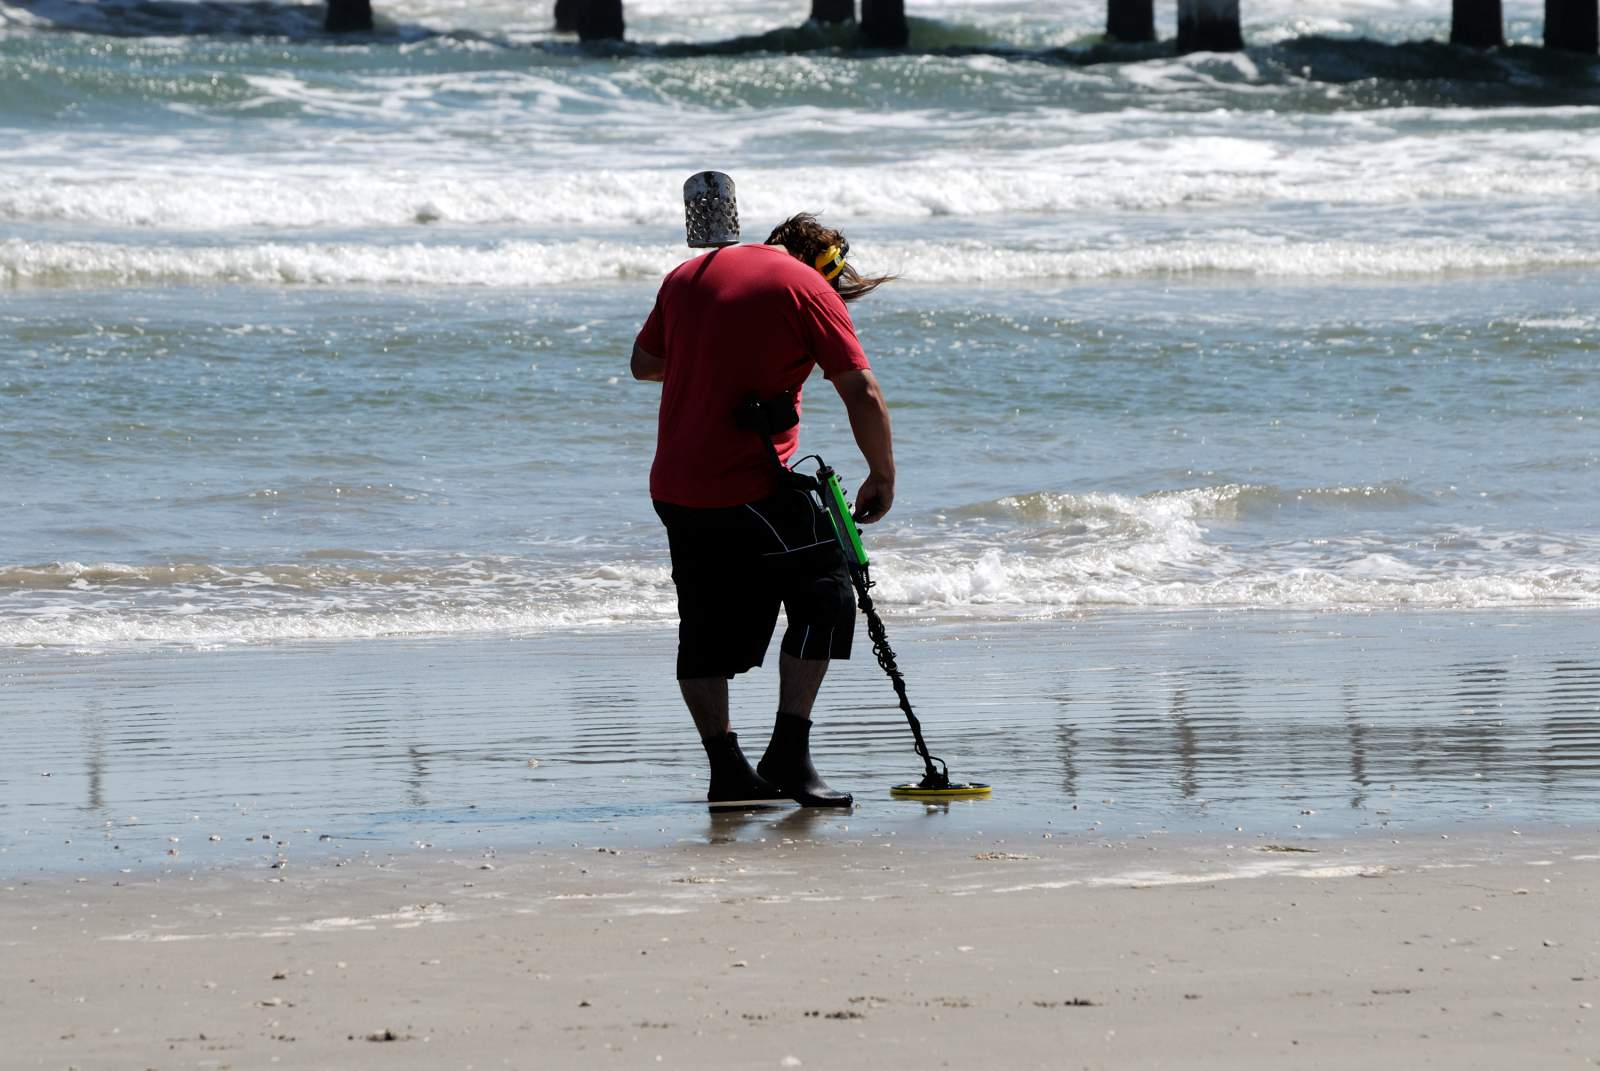 Key Things to Consider When Purchasing a Metal Detector for Beach